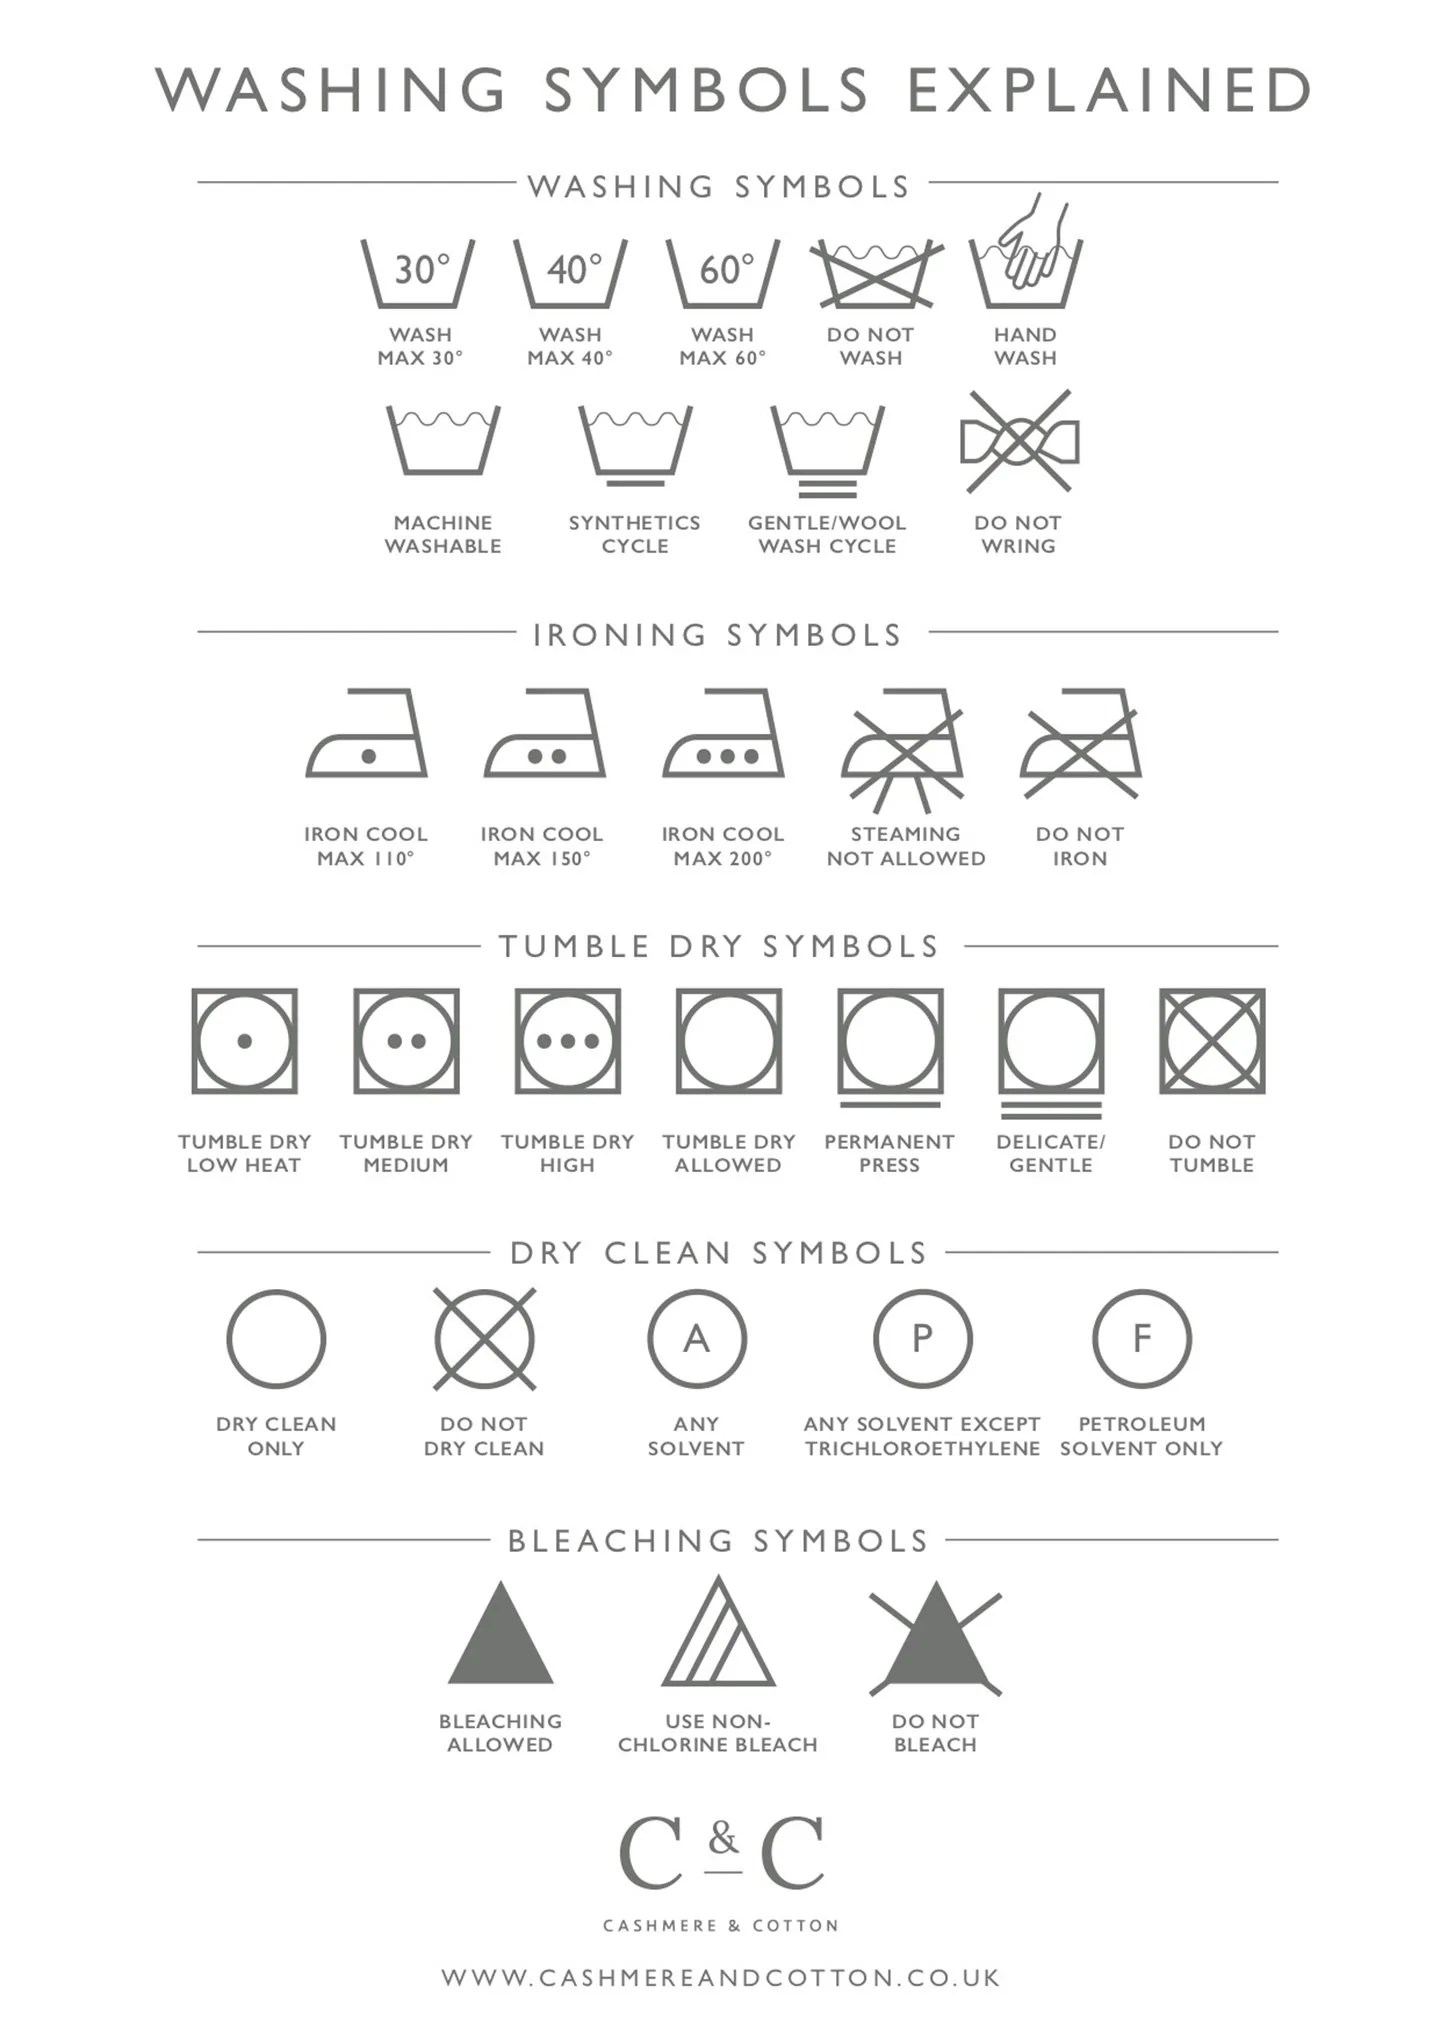 Washing Laundry Symbols Explained Cashmere Cotton